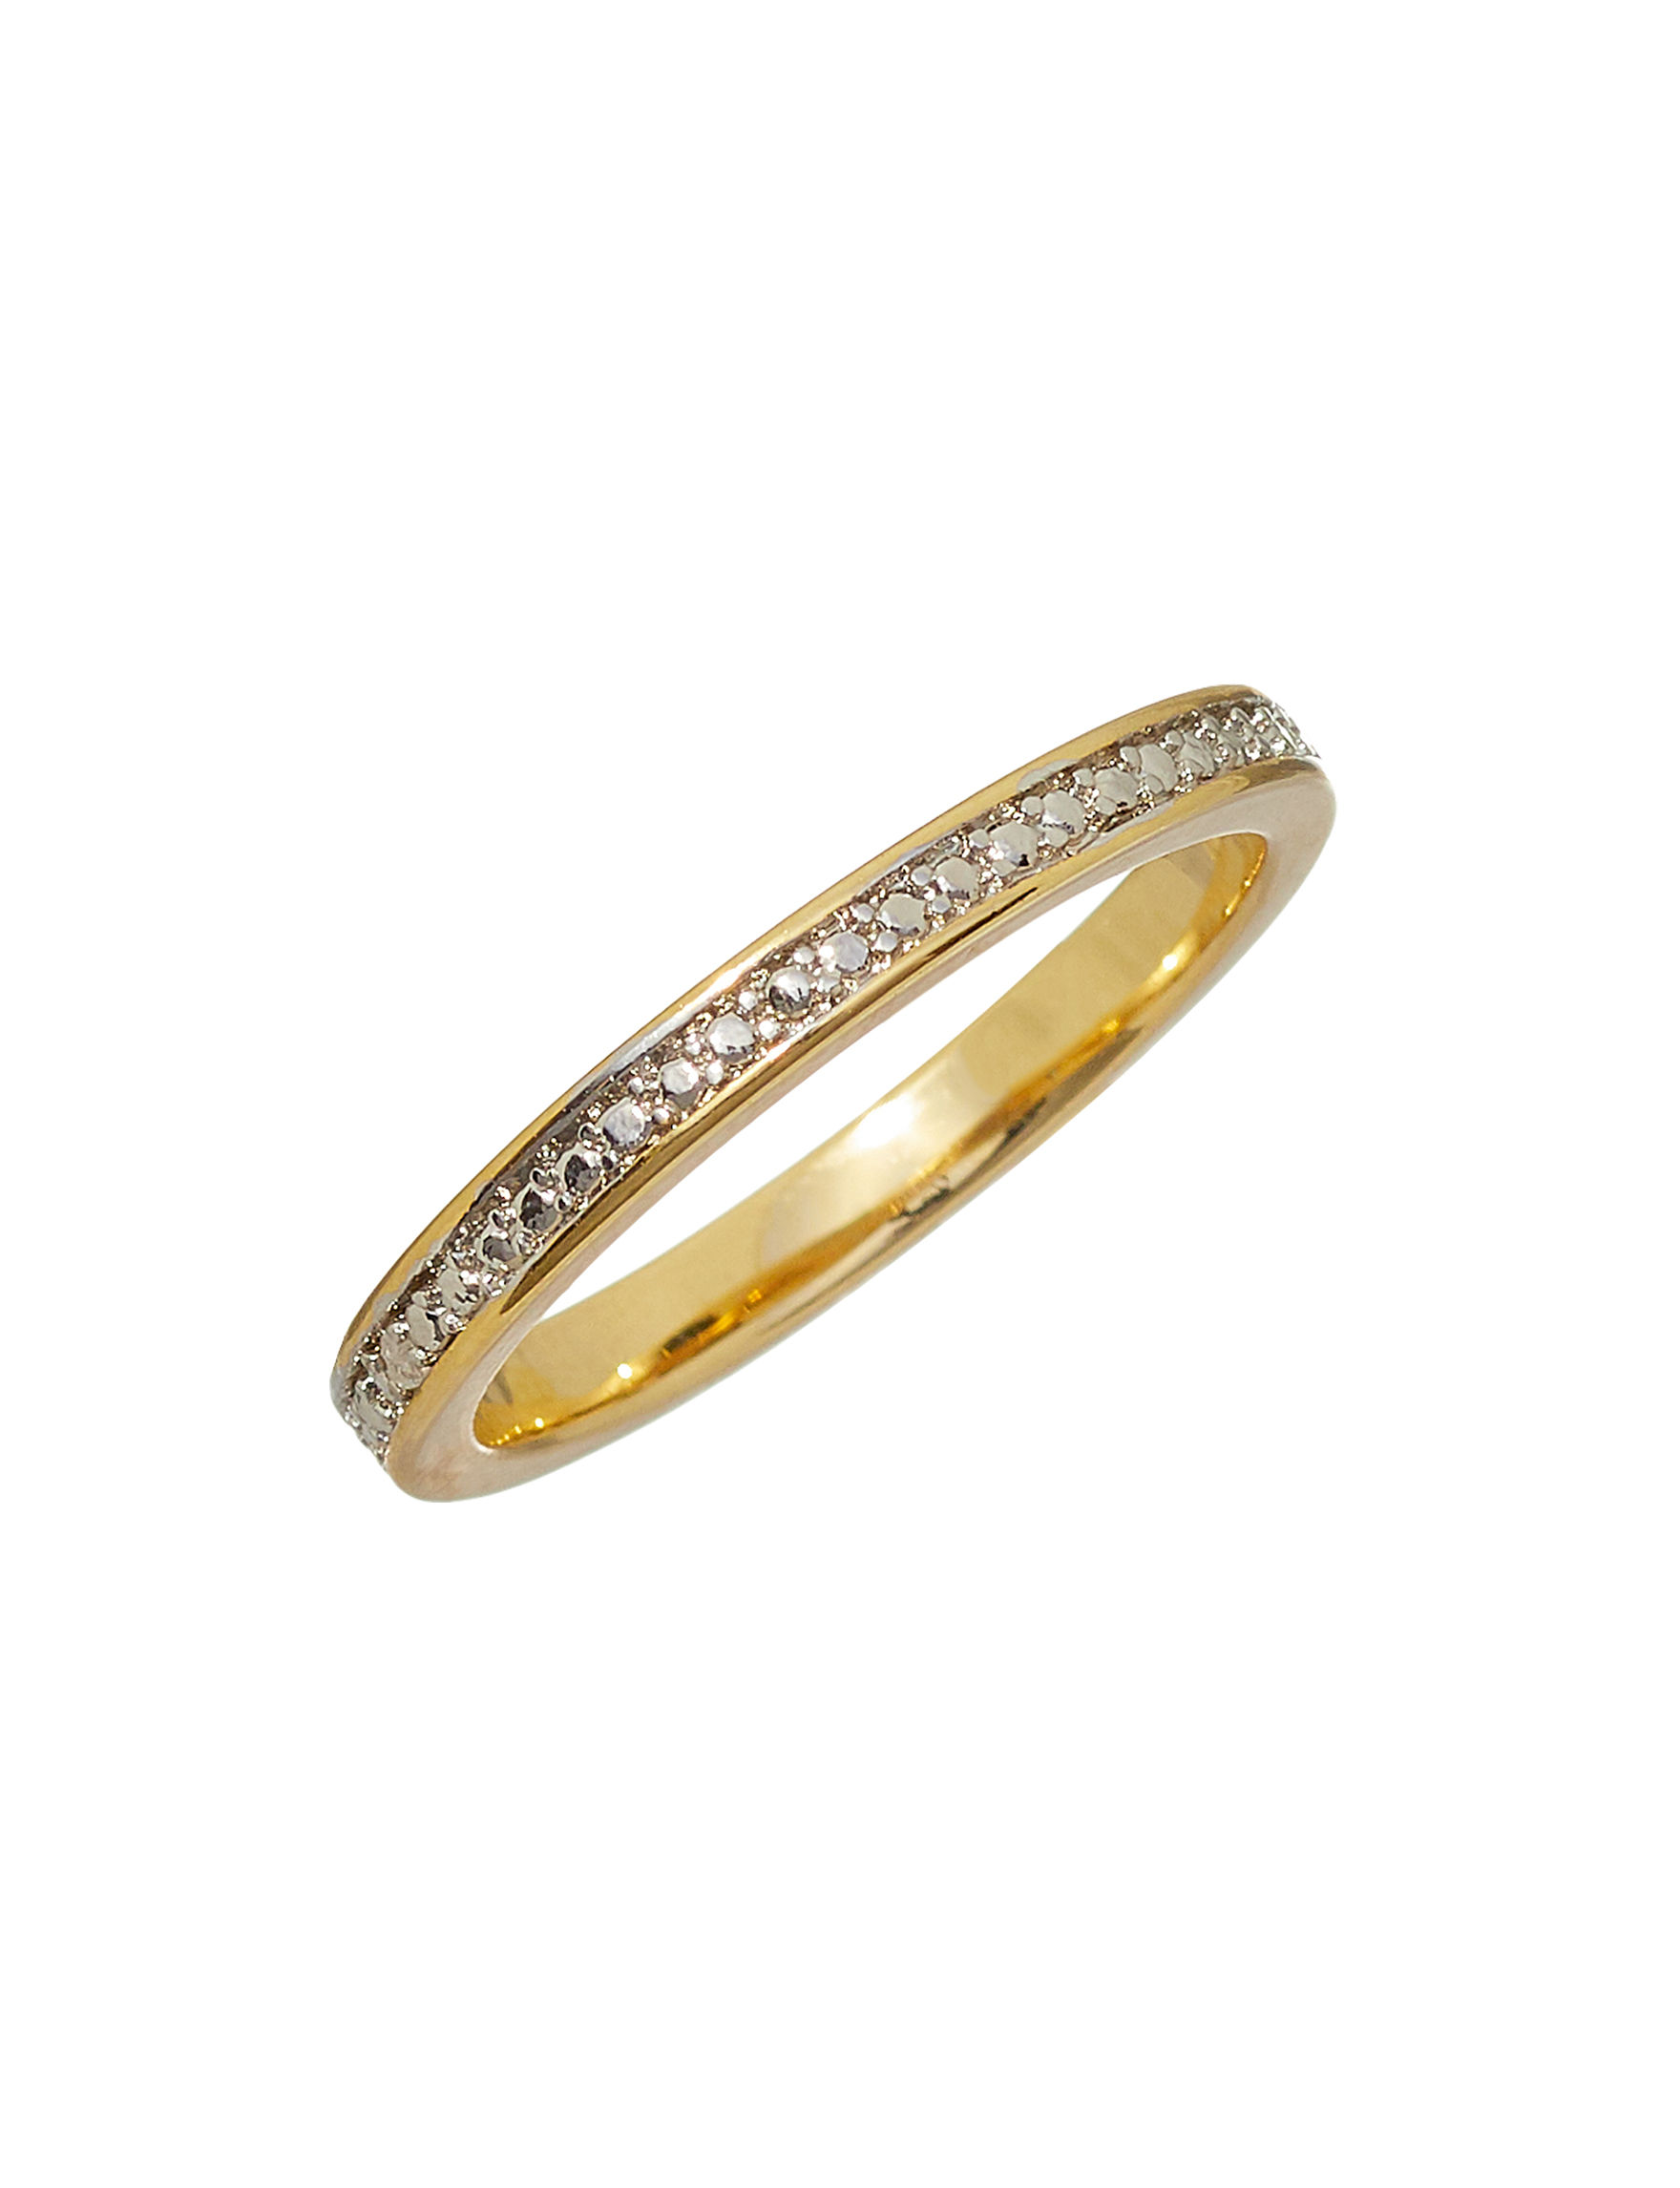 NES Gold Rings Fine Jewelry